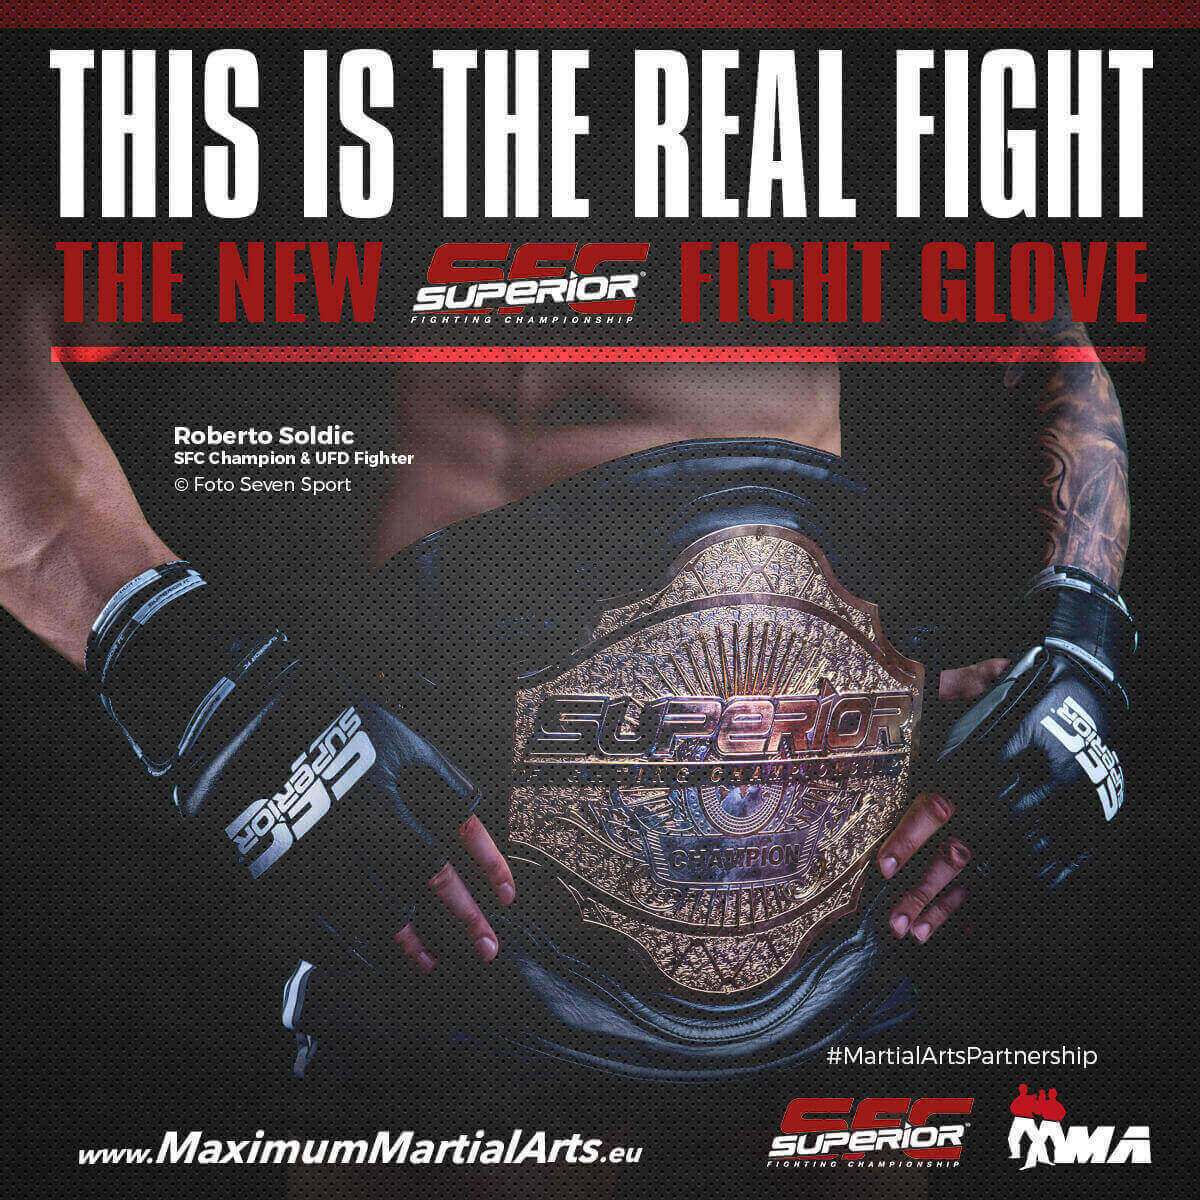 THE NEW OFFICIAL SFC FIGHT GLOVE